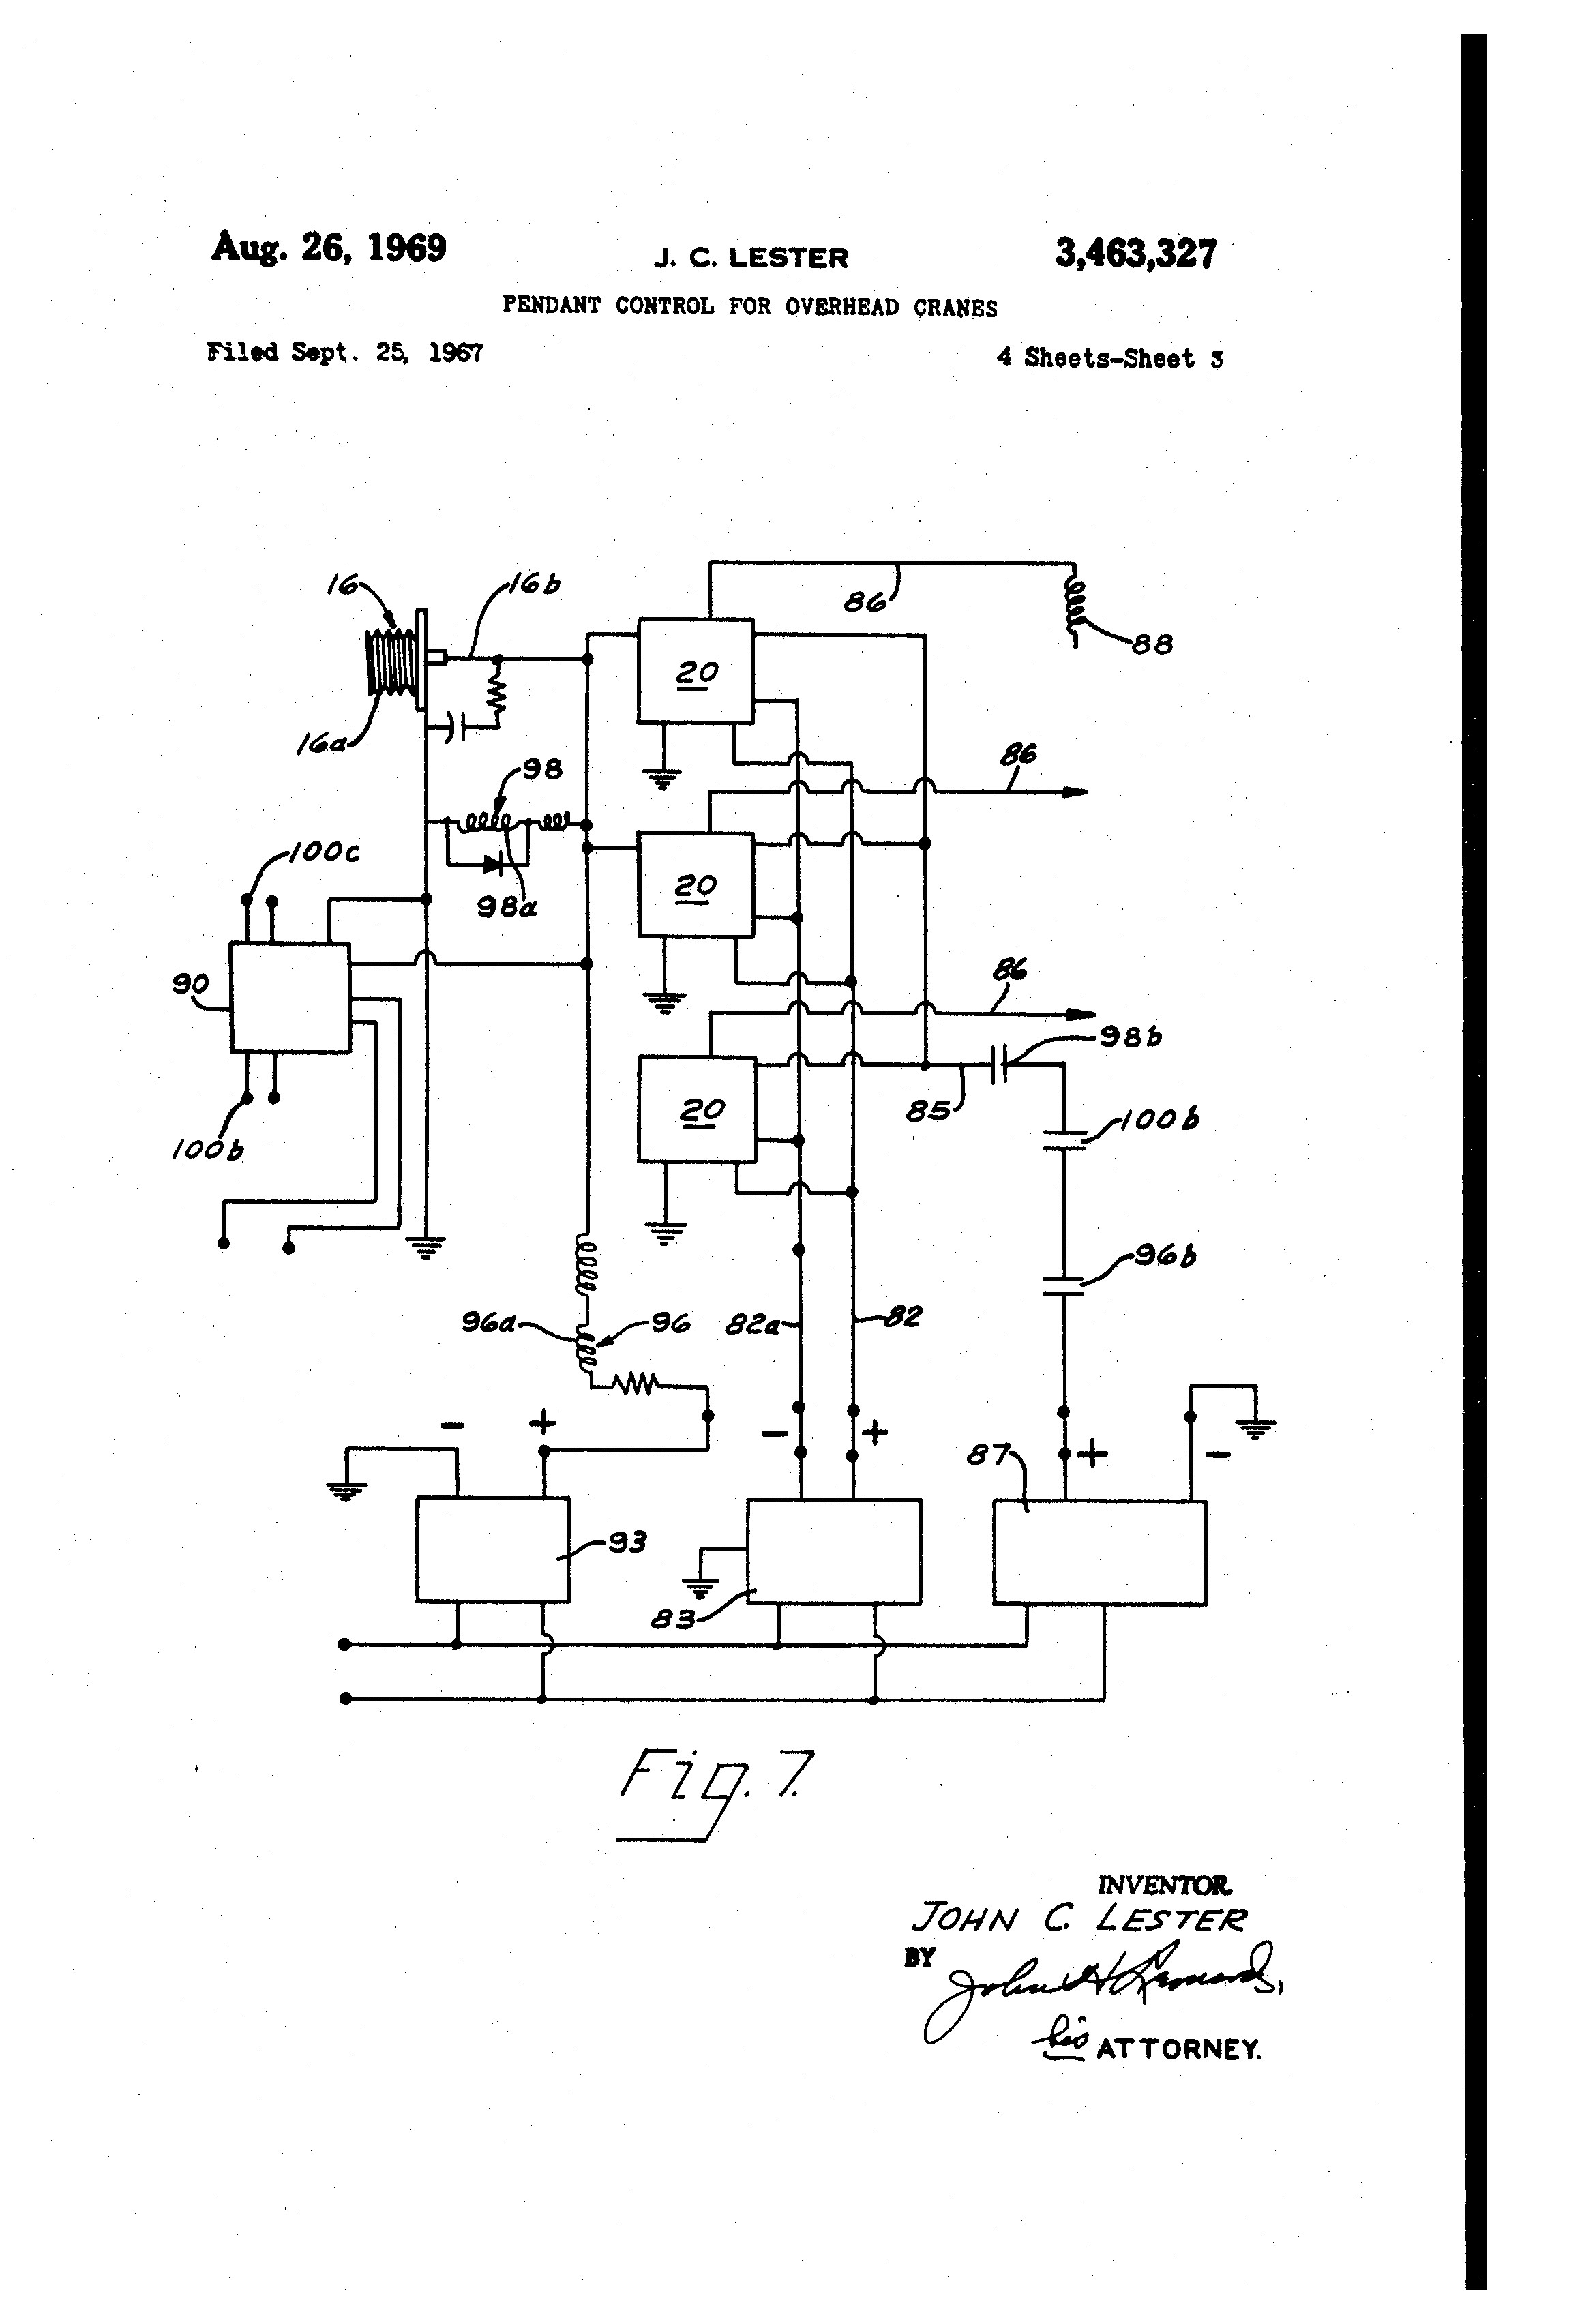 Incomplete Circuit Diagram Free Download Wiring Diagram Schematic